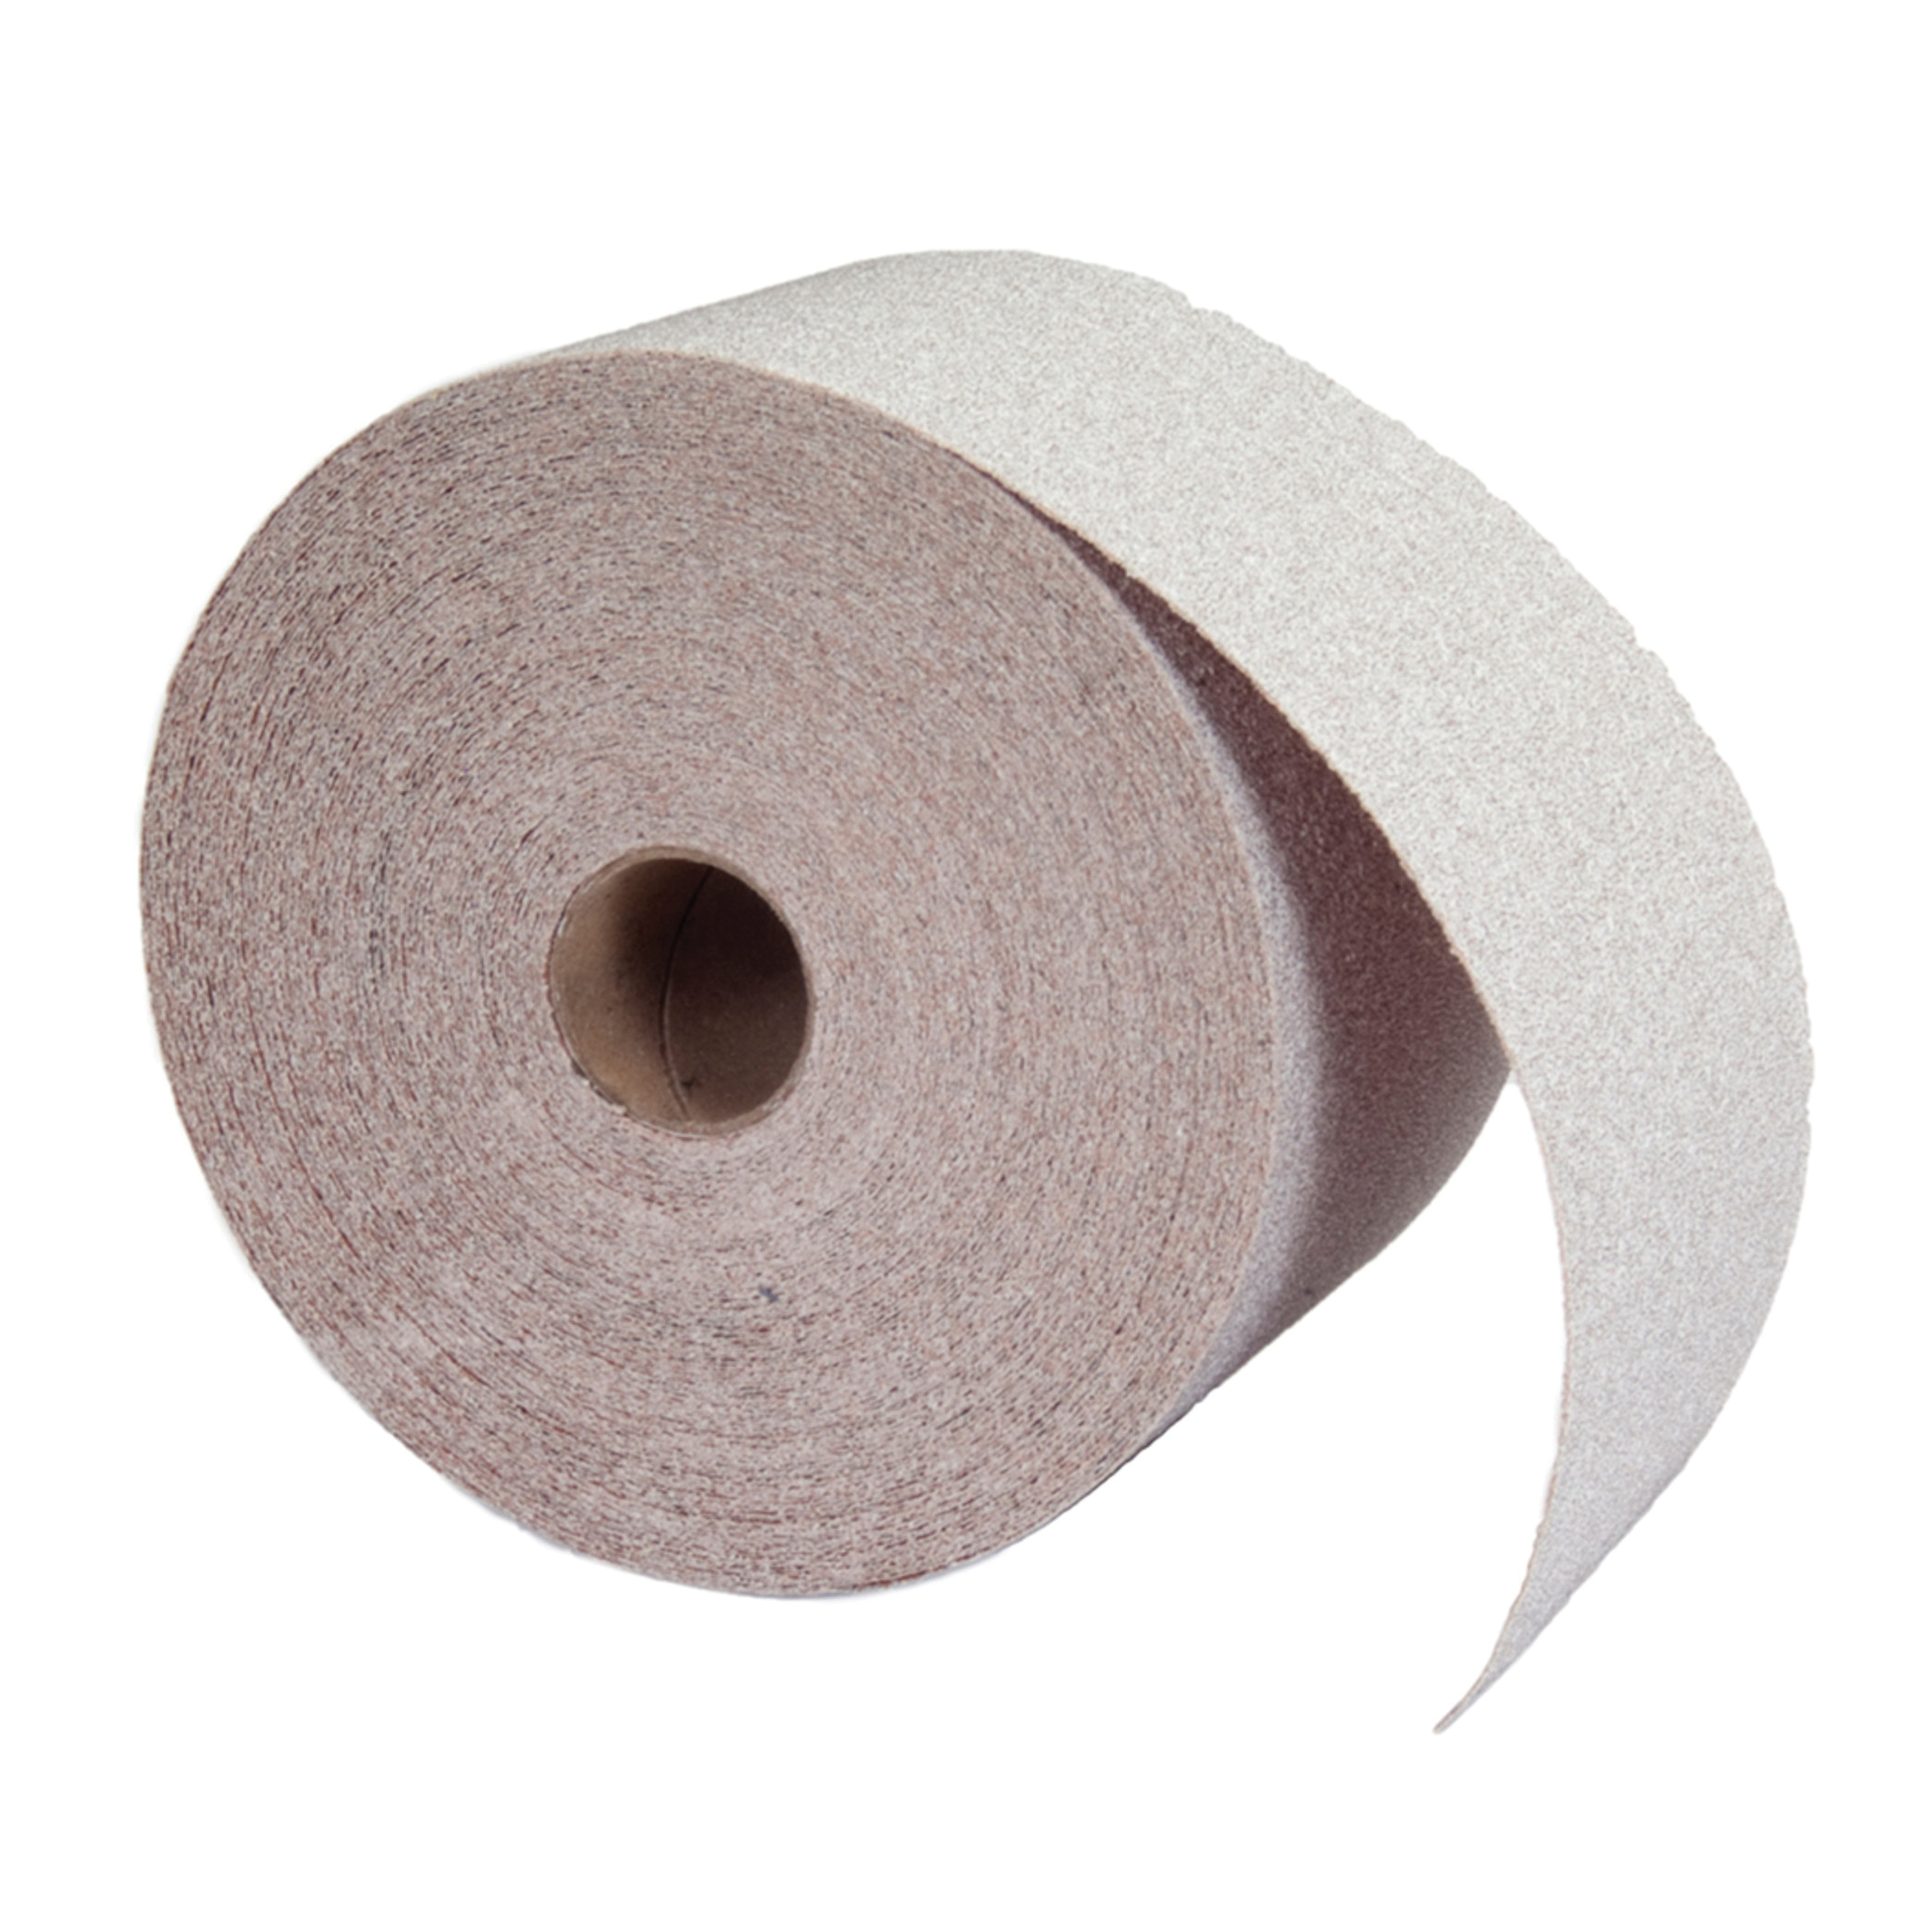 Norton® 66261131683 OP A275 Coated Abrasive Roll, 45 yd L x 2-3/4 in W, 320 Grit, Extra Fine Grade, Aluminum Oxide Abrasive, Anti-Loading Paper Backing